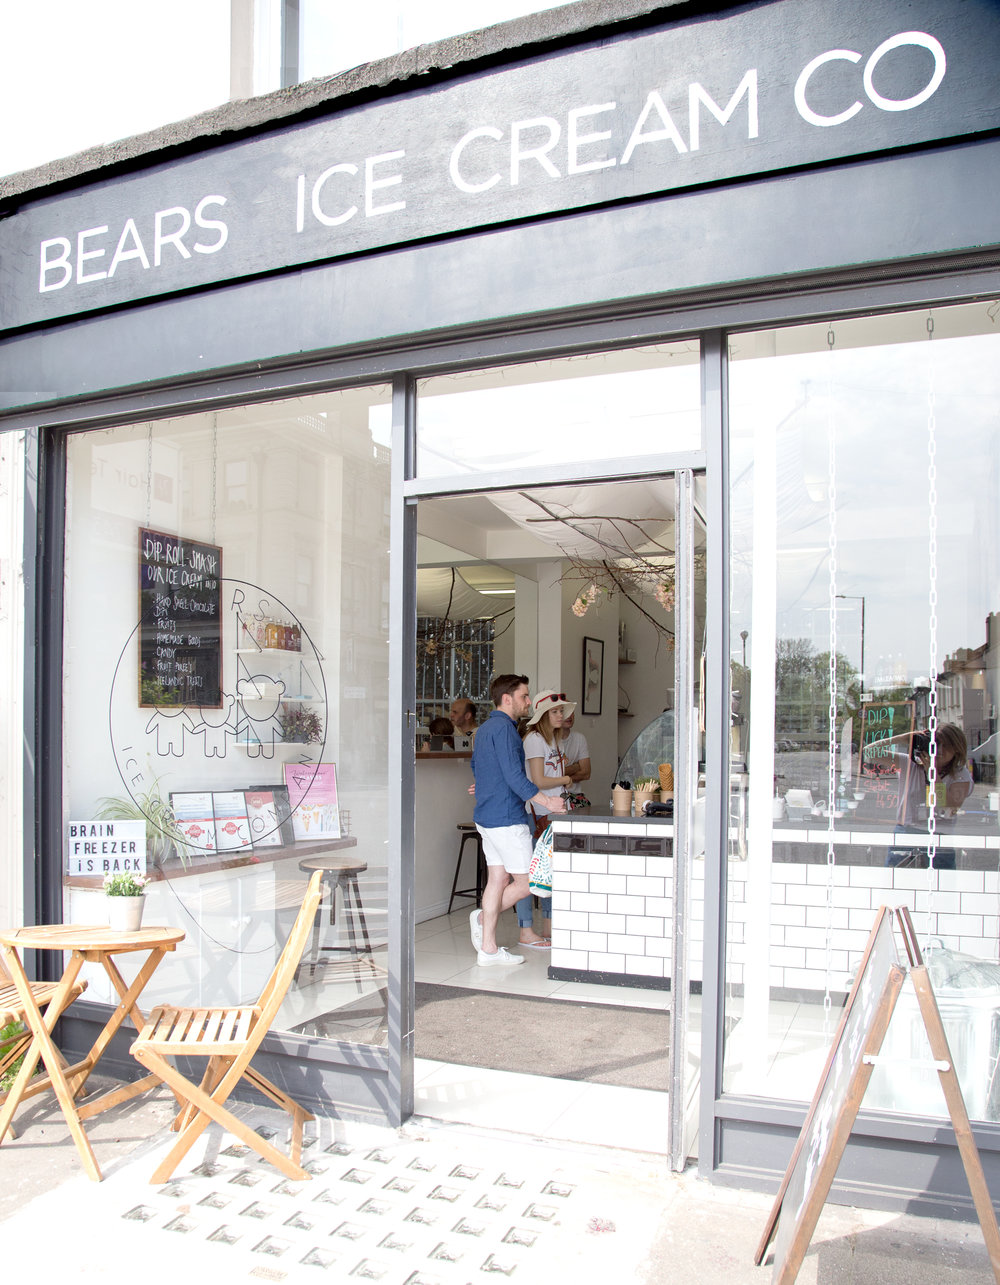 Bears Ice Cream Co, West London